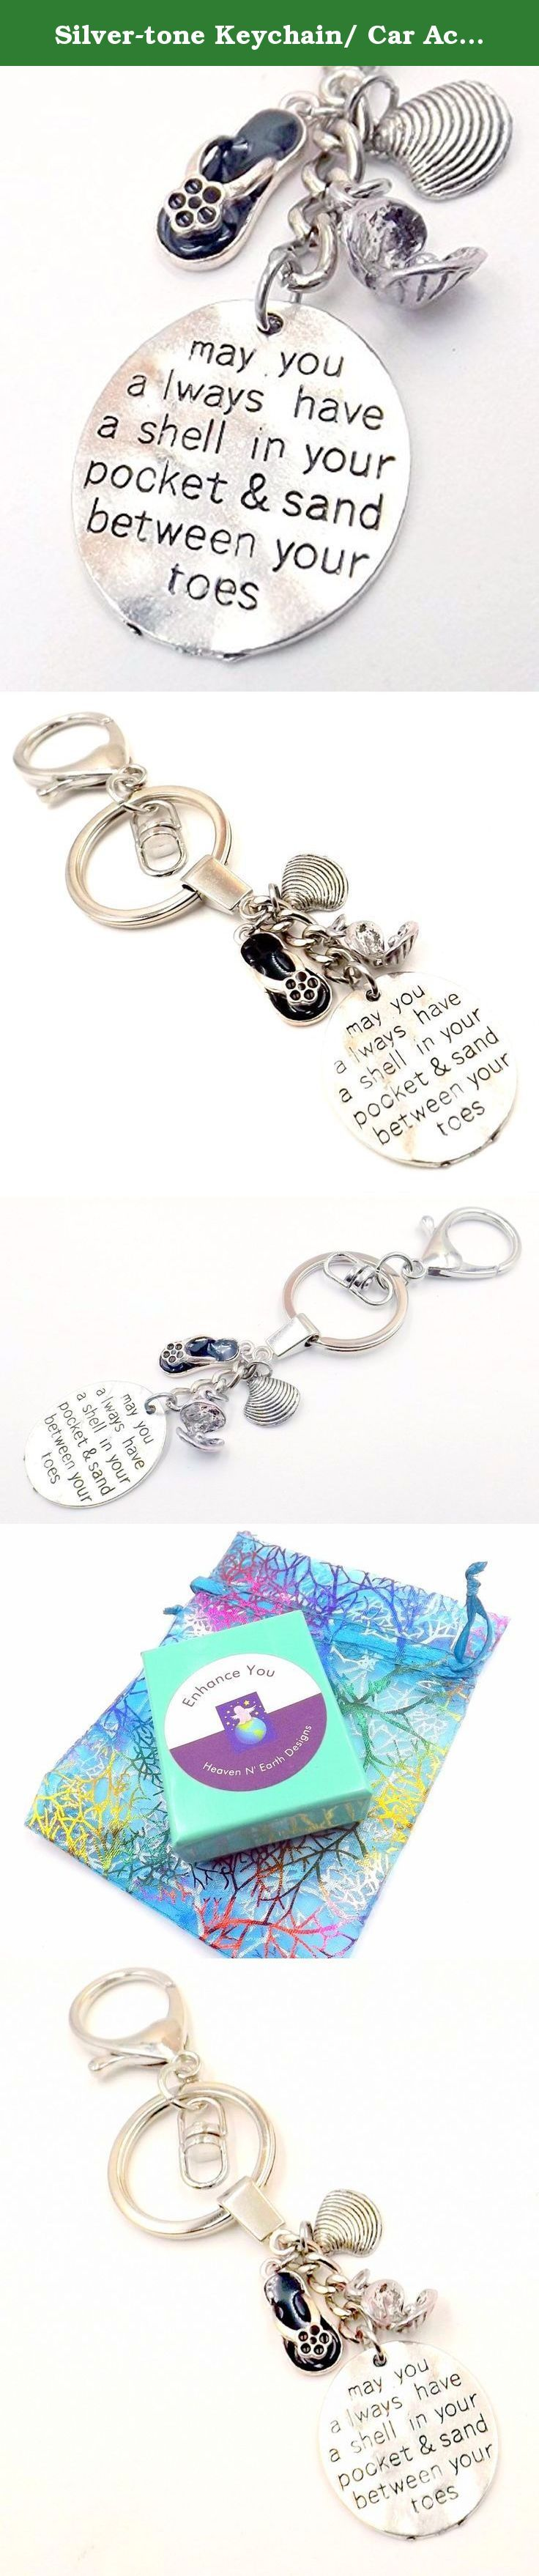 """Silver-tone Keychain/ Car Accessory- Pocket -Beach Lover's Blessing - Ocean Lovers Collection. This keychain in silver-tone features a disct with the message """"May you always have a shell in your pocket and sand between your toes"""". Accents include shell charms, and a flip-flop. The keychain itself is substantial and the 1.50 inch clasp swivels on a ring that is 1.15 in. This accessory would make the perfect Valentine's Day present or birthday gift for that special friend, husband, or wife...."""